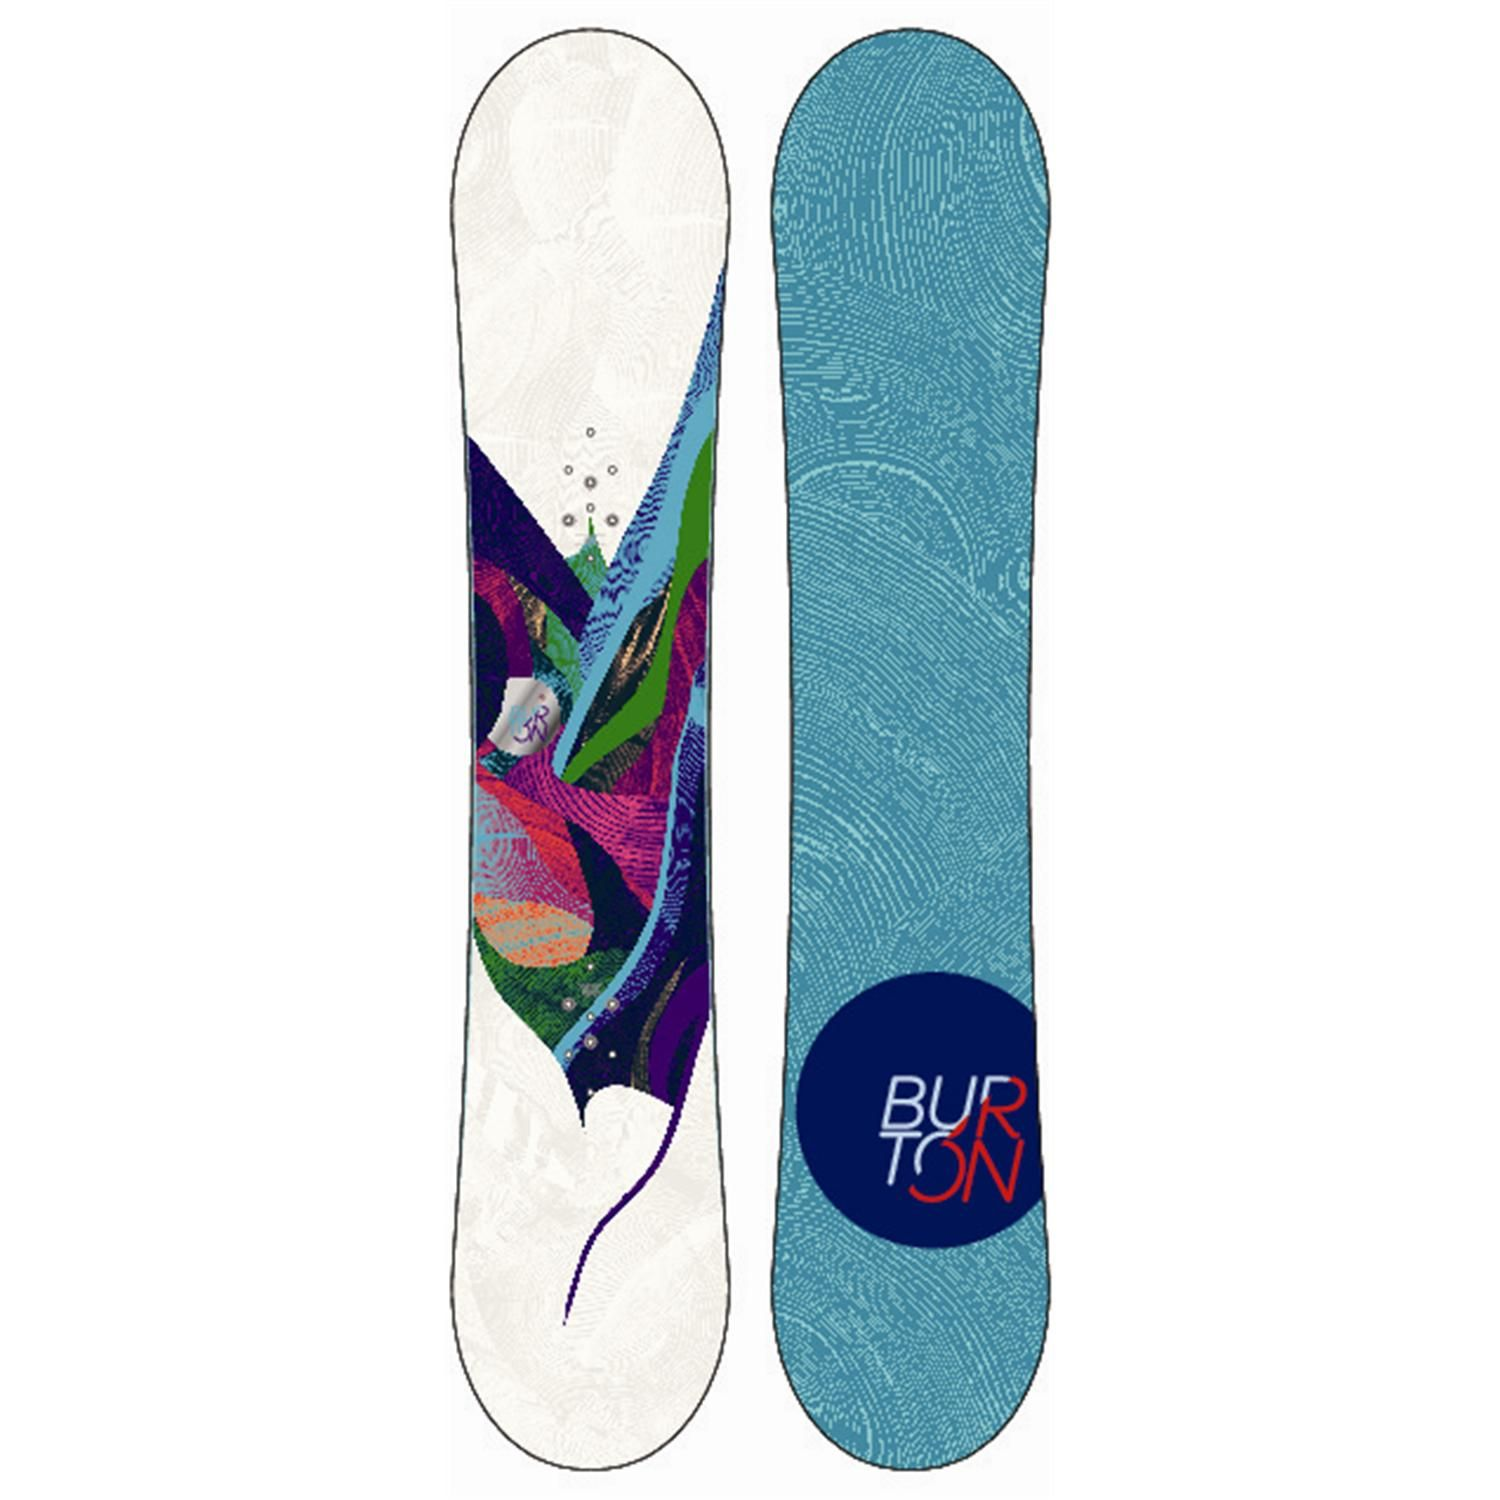 Burton luxe 150cm oh yeahhhhh i own it highly